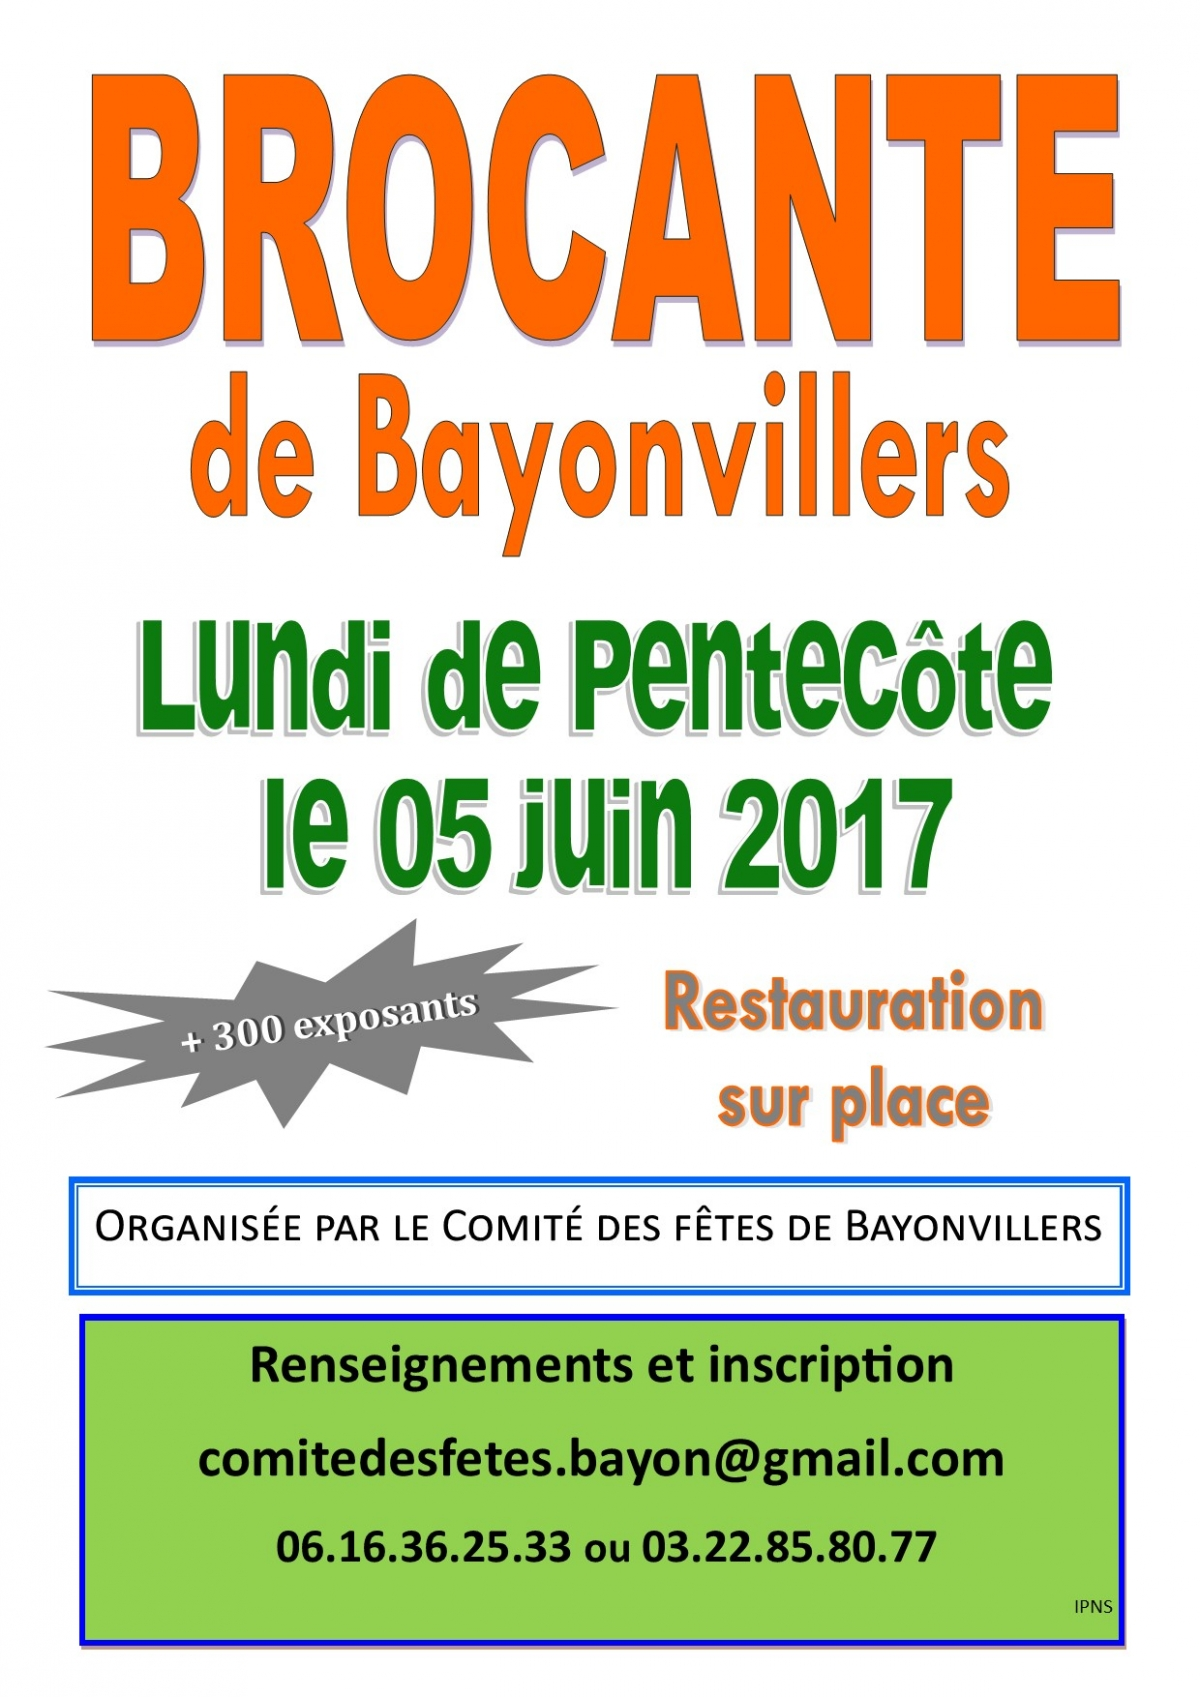 brocante lundi de pentec te le 05 juin 2017 comite des fetes de bayonvillers l 39 agenda sorties. Black Bedroom Furniture Sets. Home Design Ideas